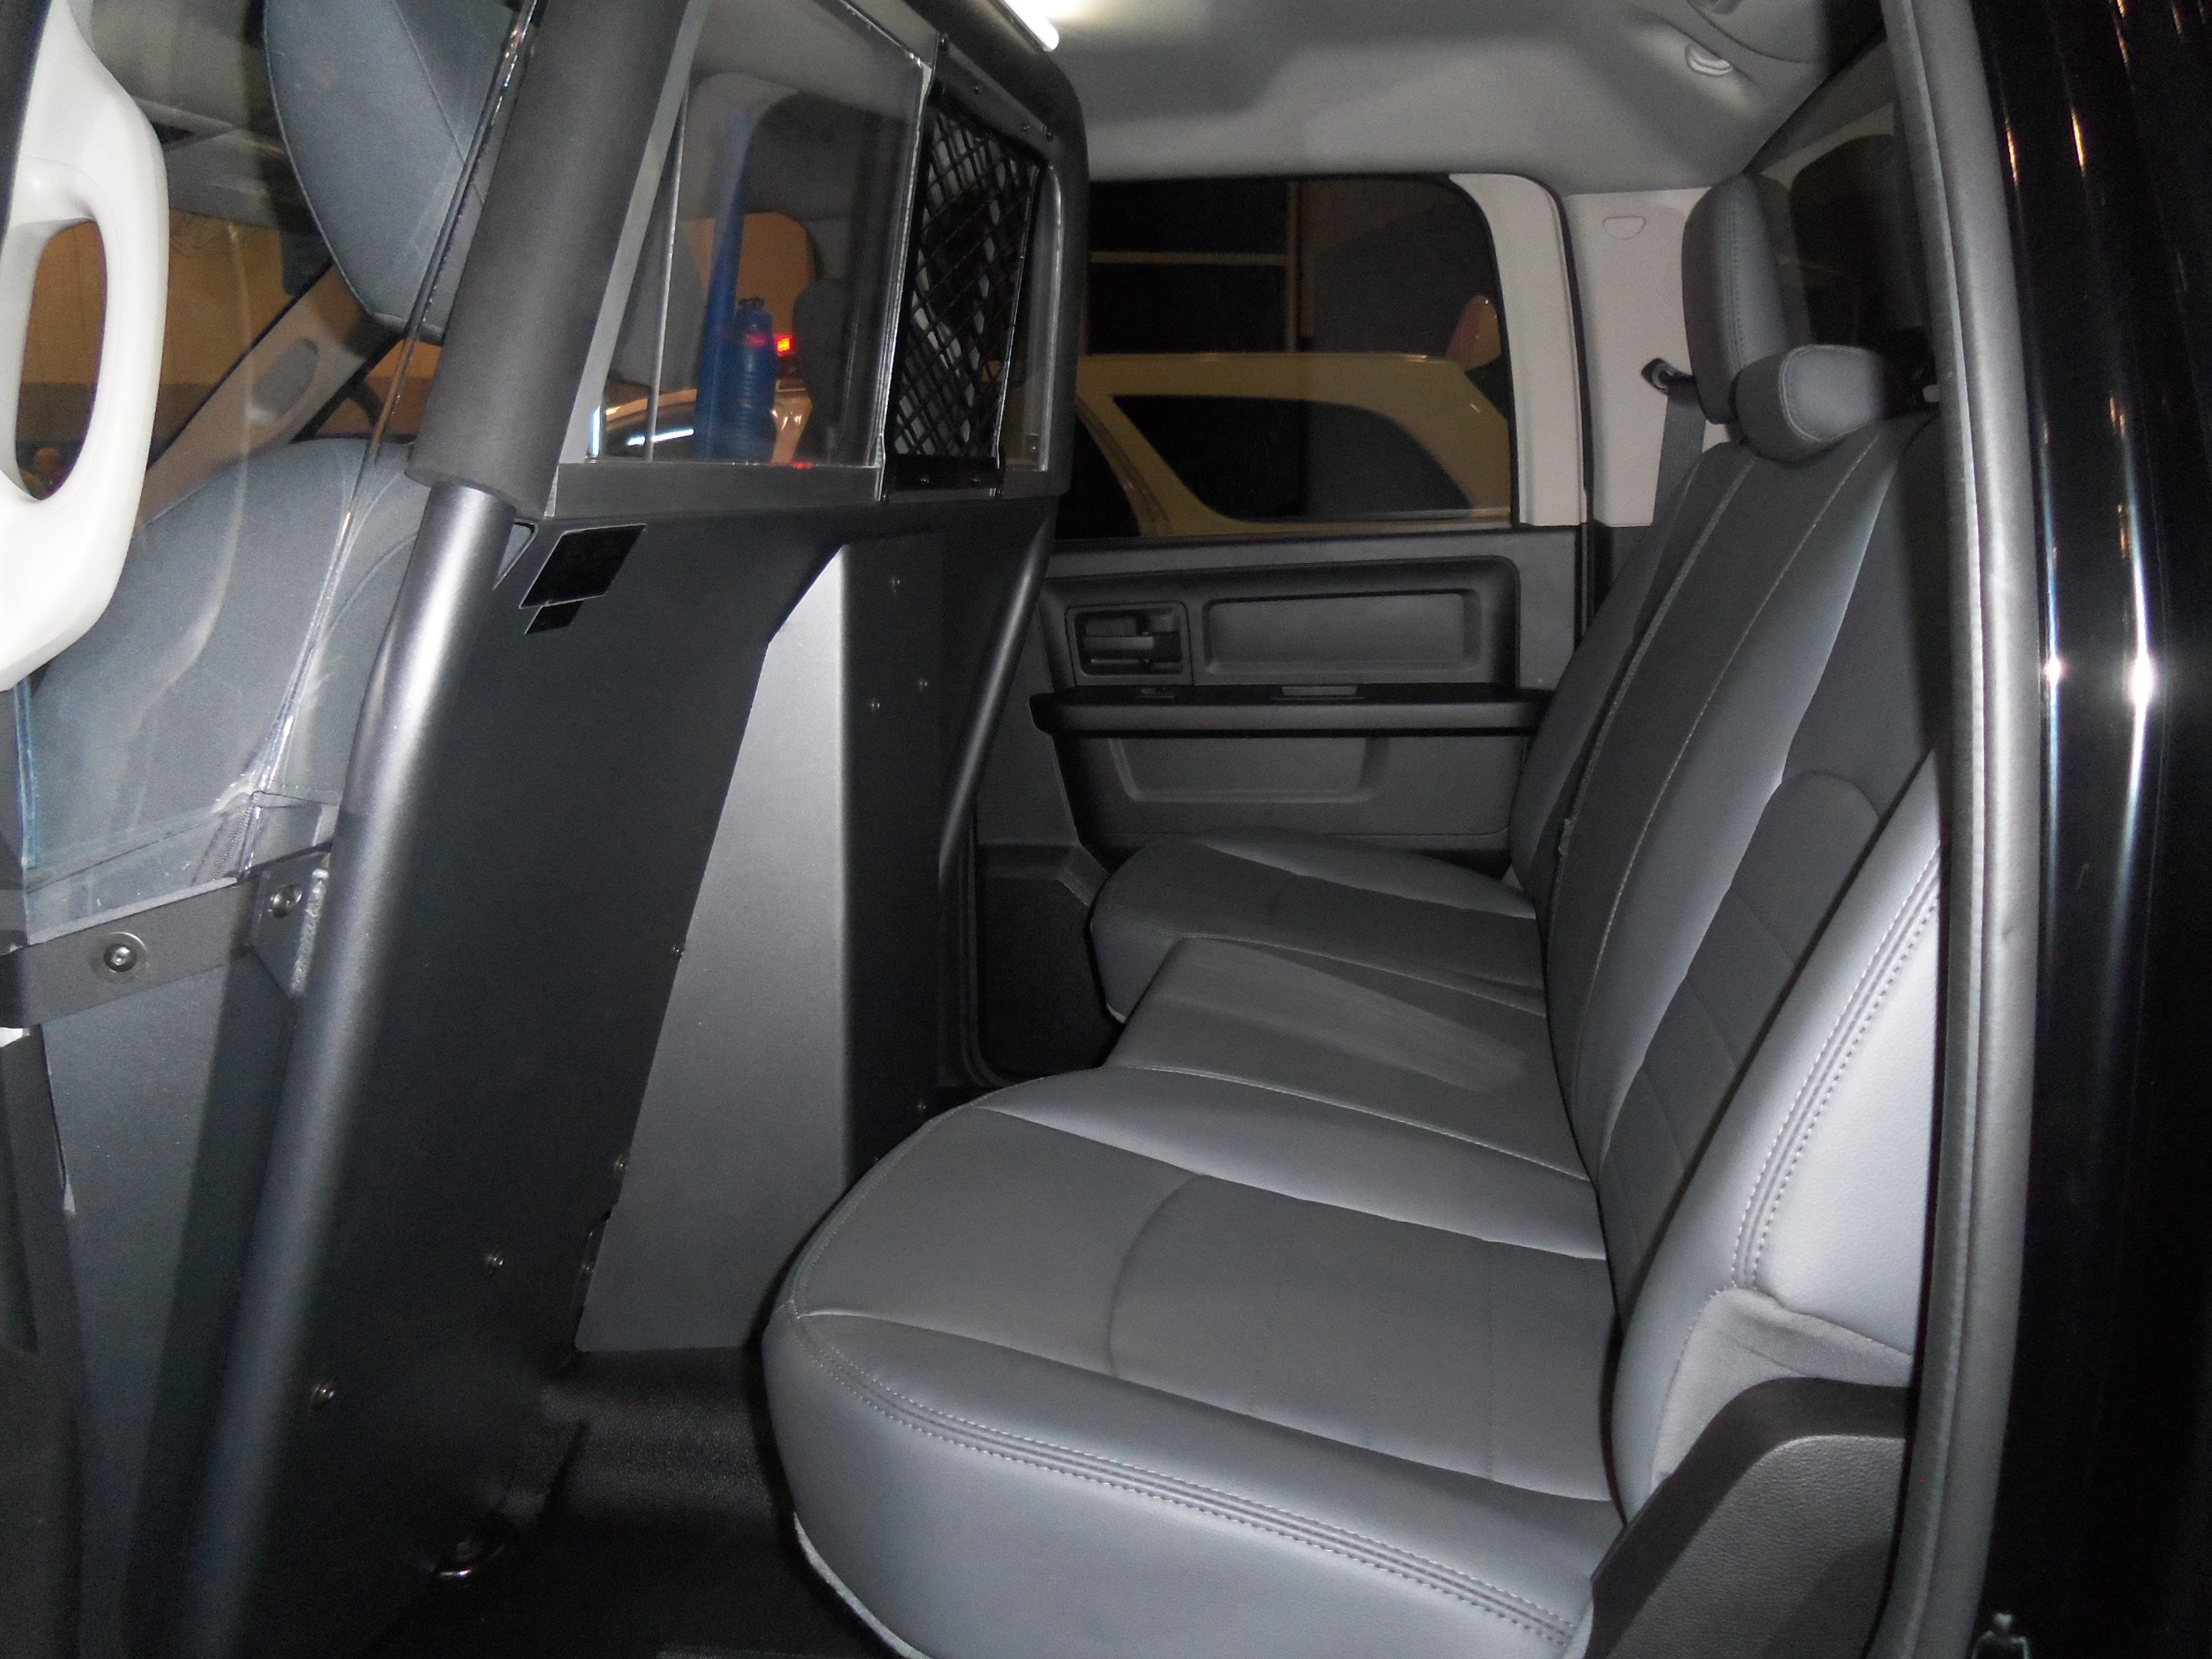 rear seat view with prisoner partition the dodge ram 1500 special service vehicle displayed in. Black Bedroom Furniture Sets. Home Design Ideas